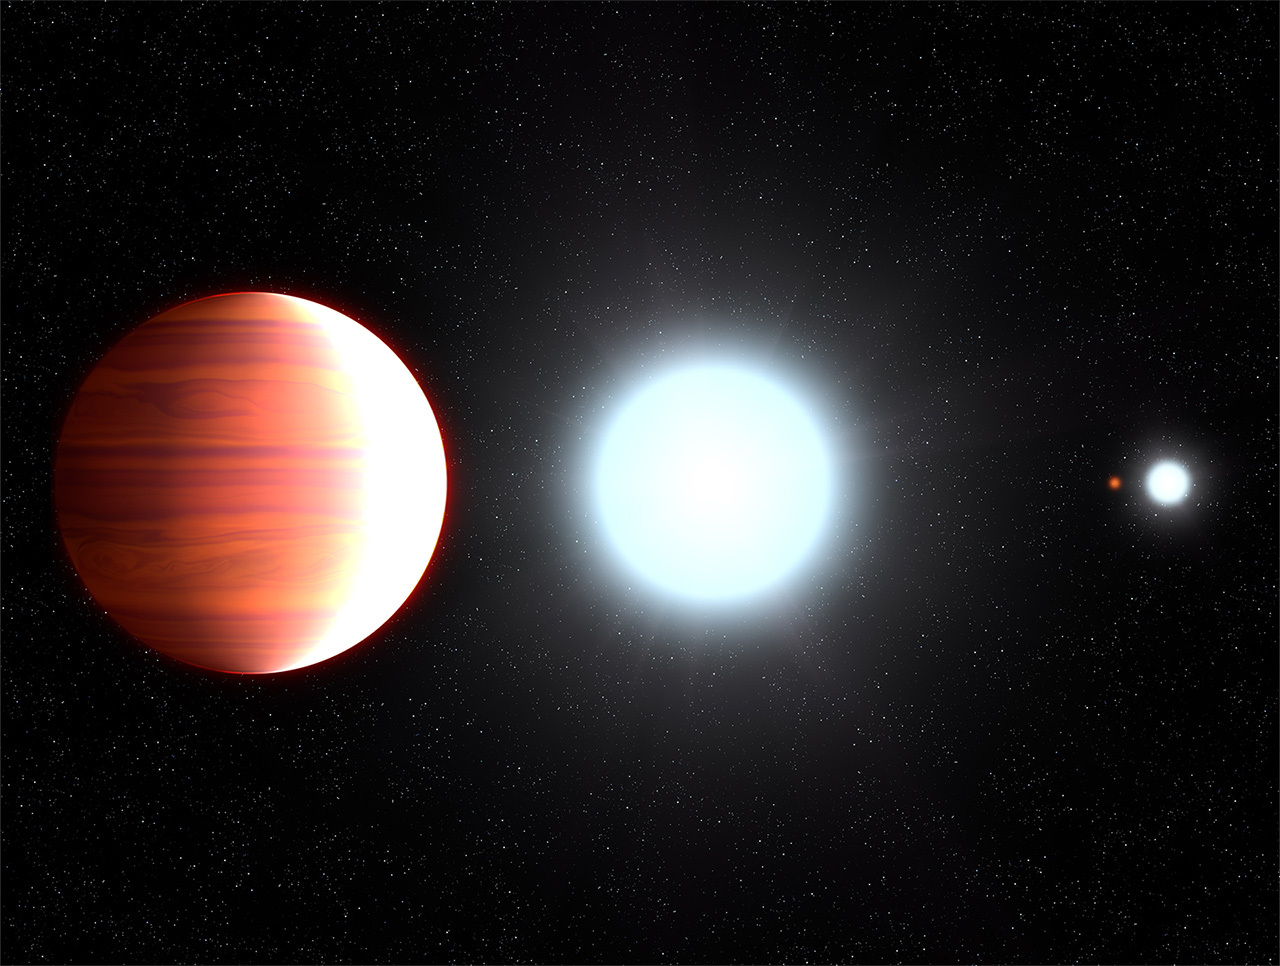 Hubble observes exoplanet that snows sunscreen – Exoplanet ...